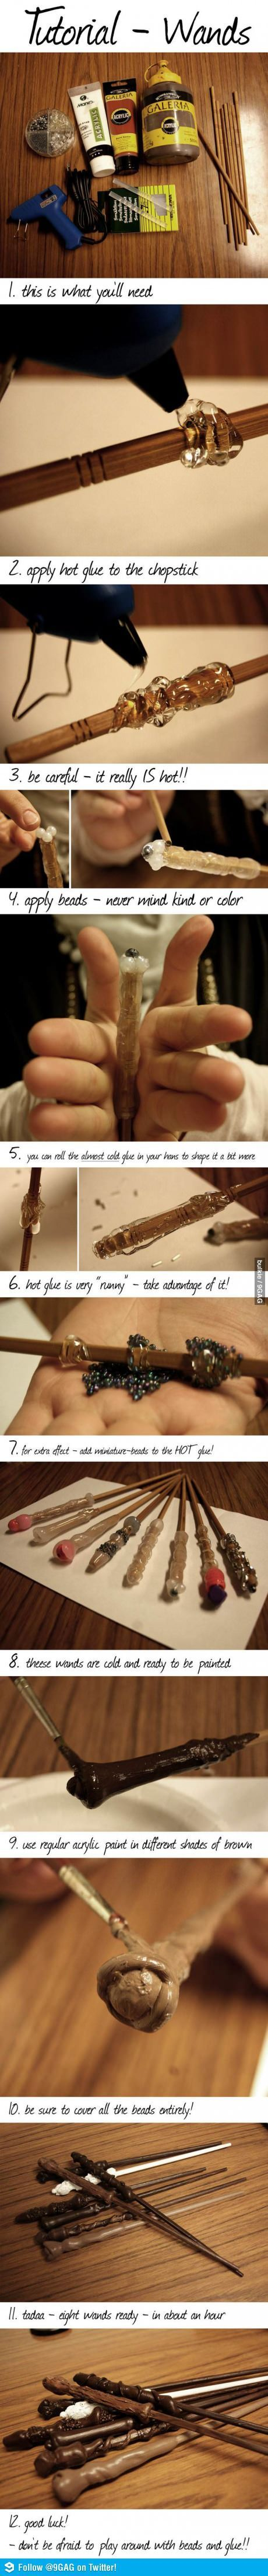 diy wands: This is probably how Ollivanders at Diagon Alley do it: